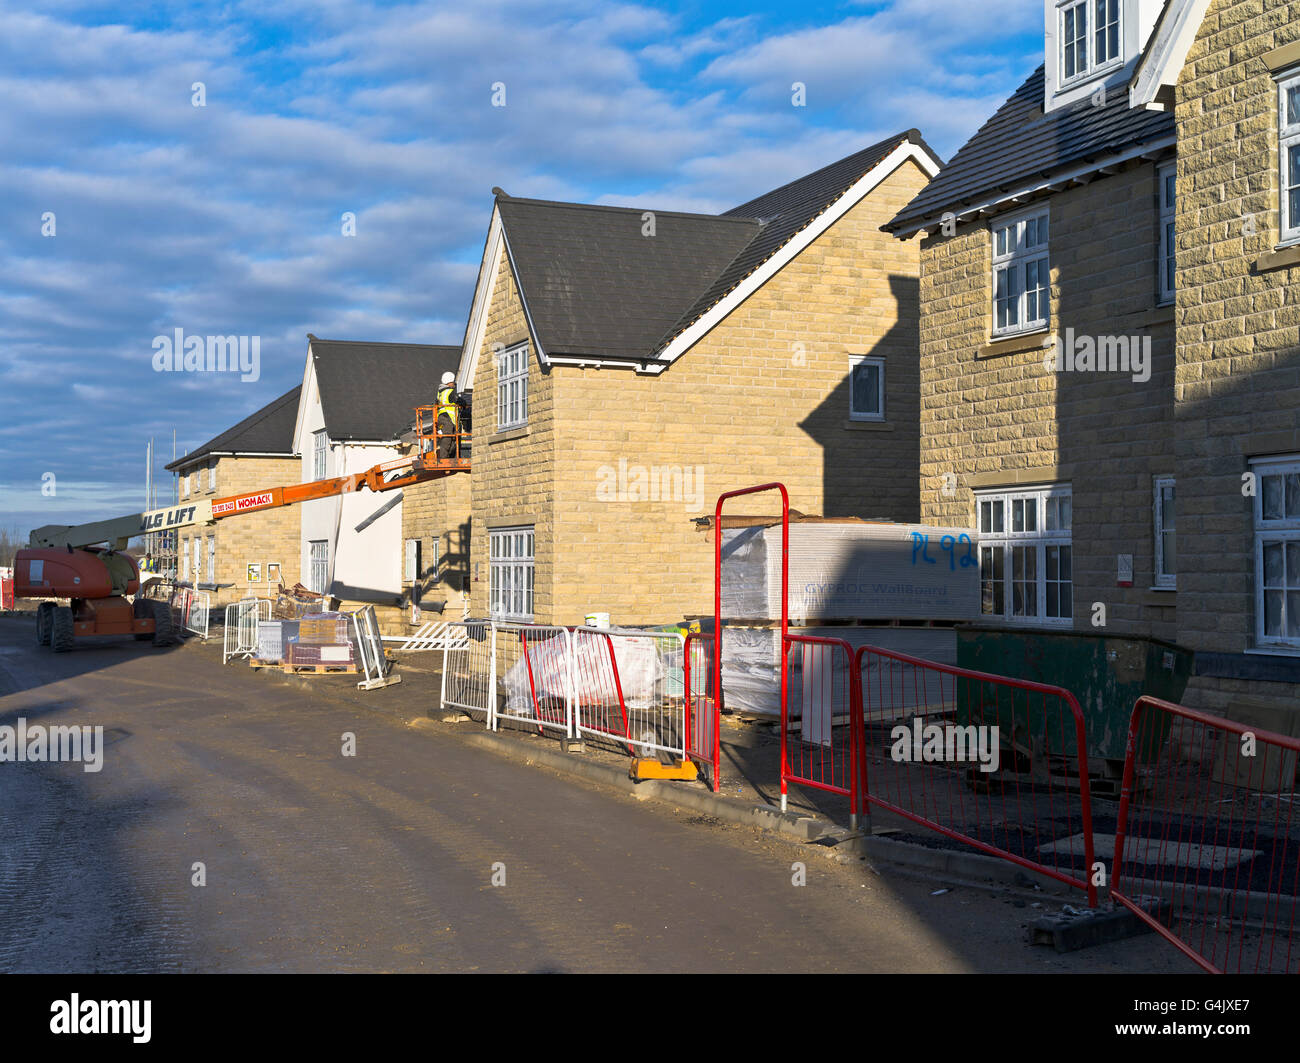 Dh REDROW HOMES UK England New Houses Uk Construction Site Building Worker Build  House